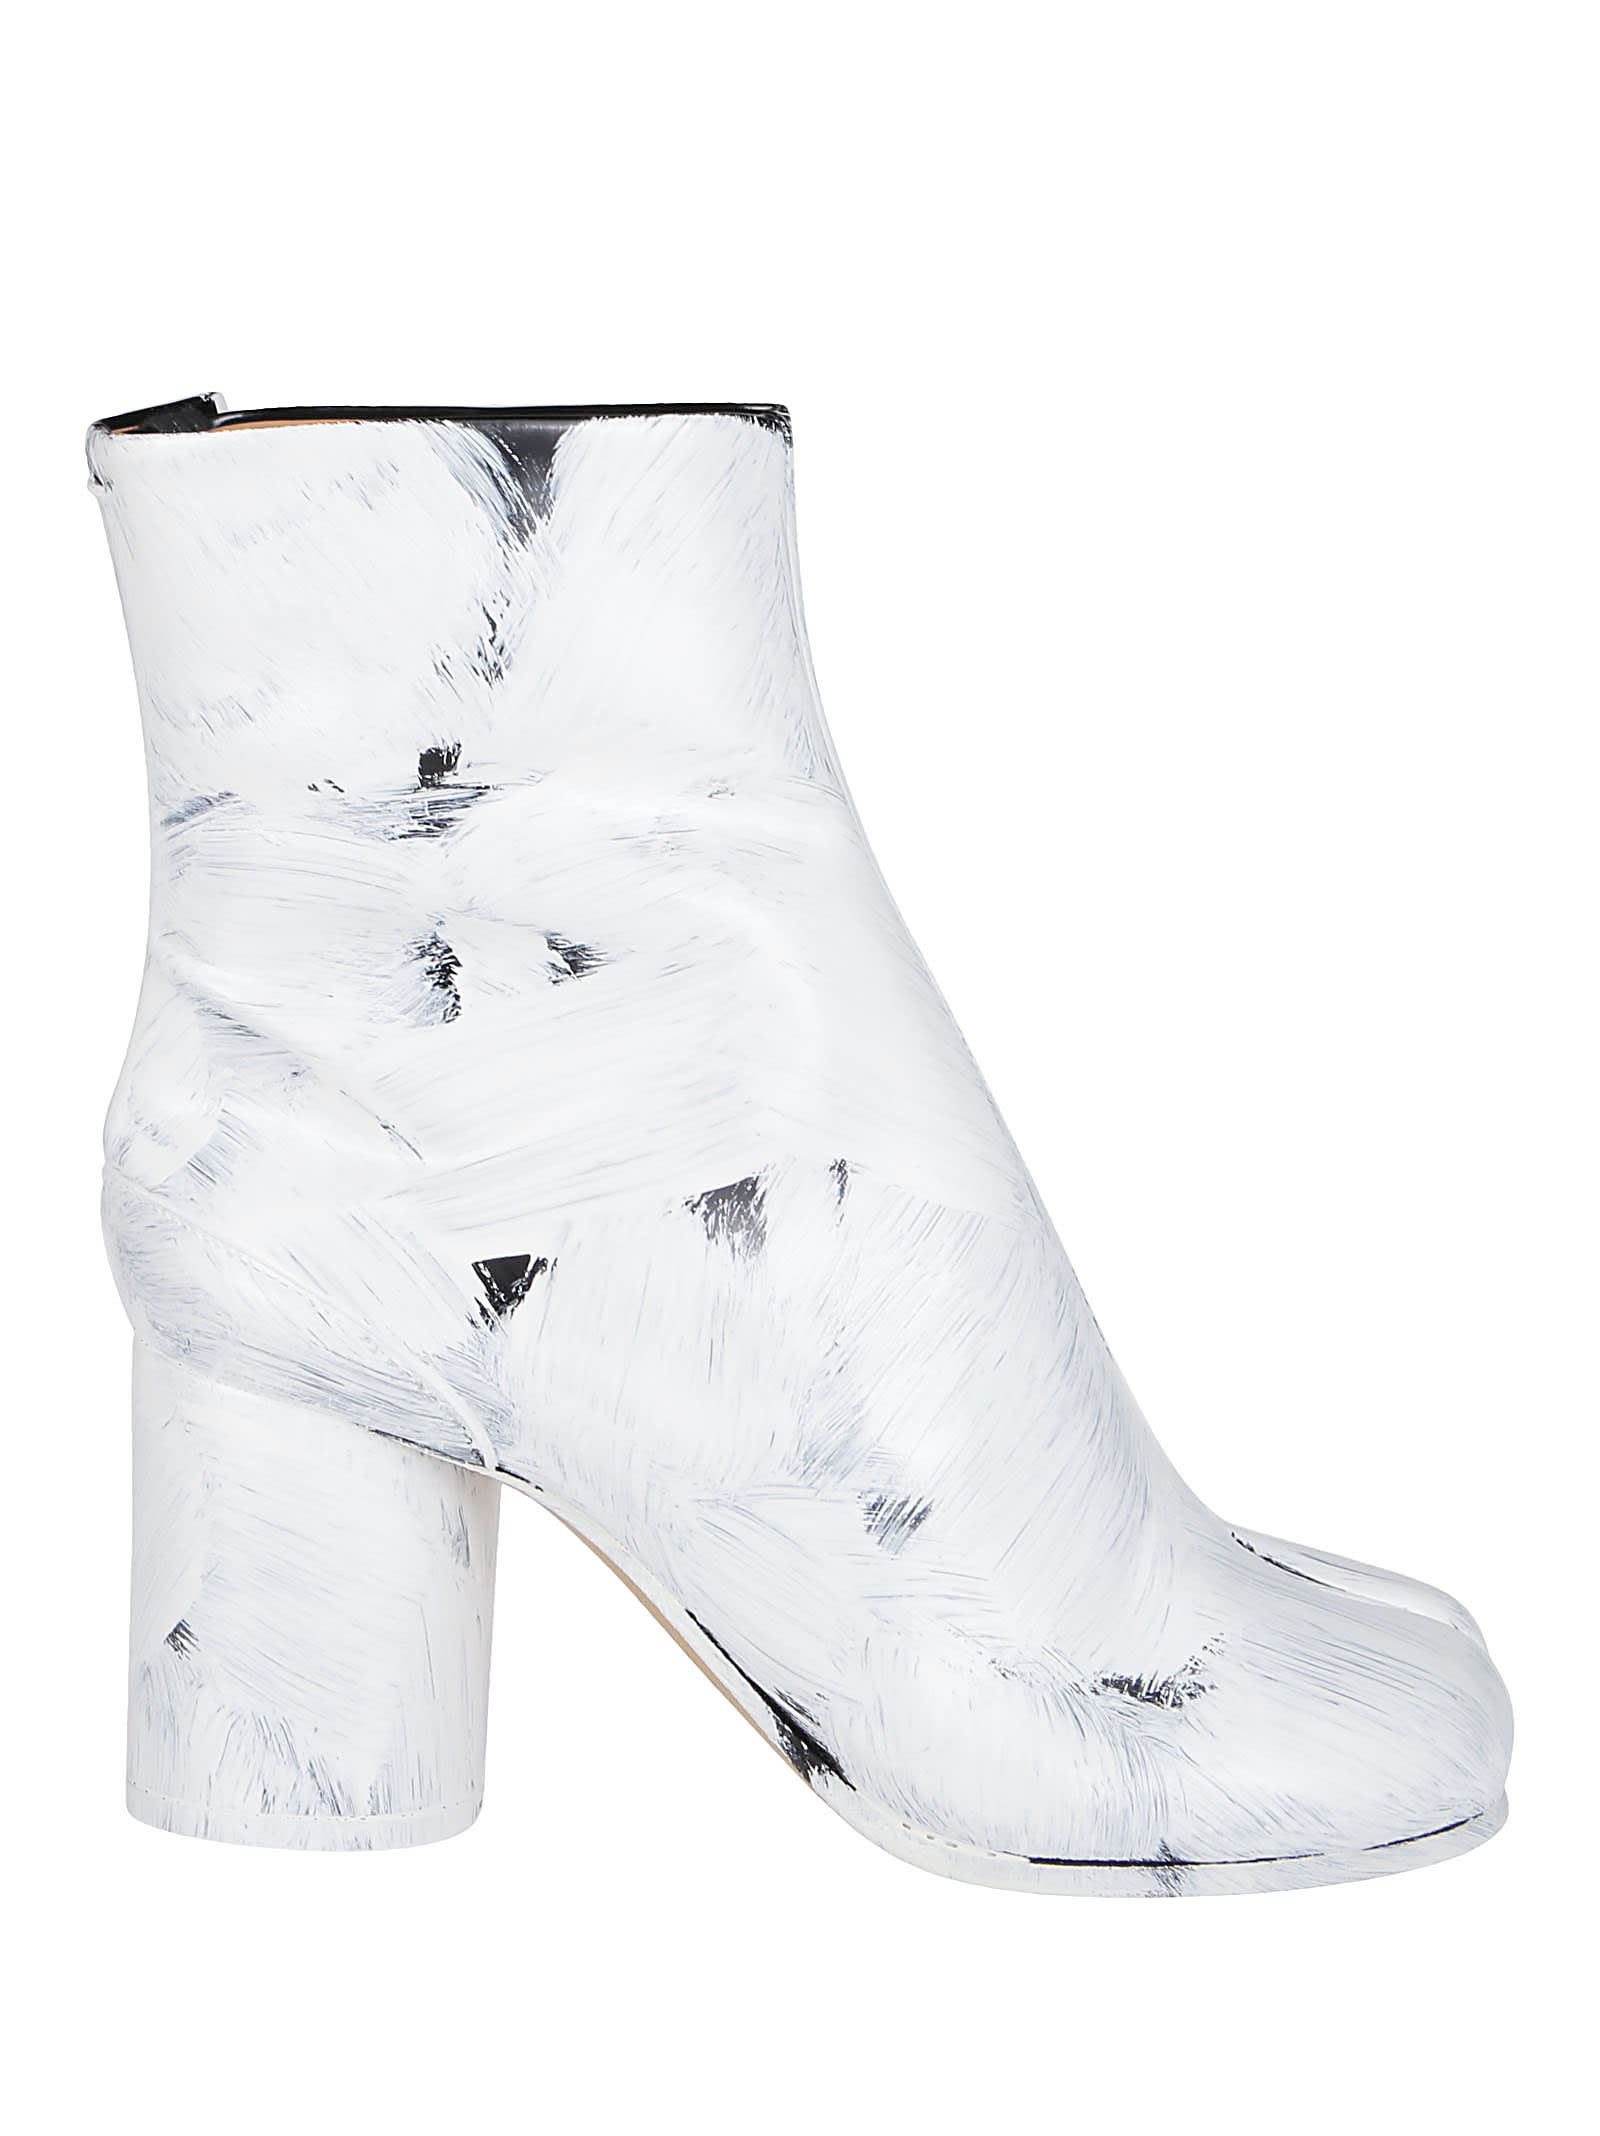 Maison Margiela WHITE LEATHER TABI BOOTS